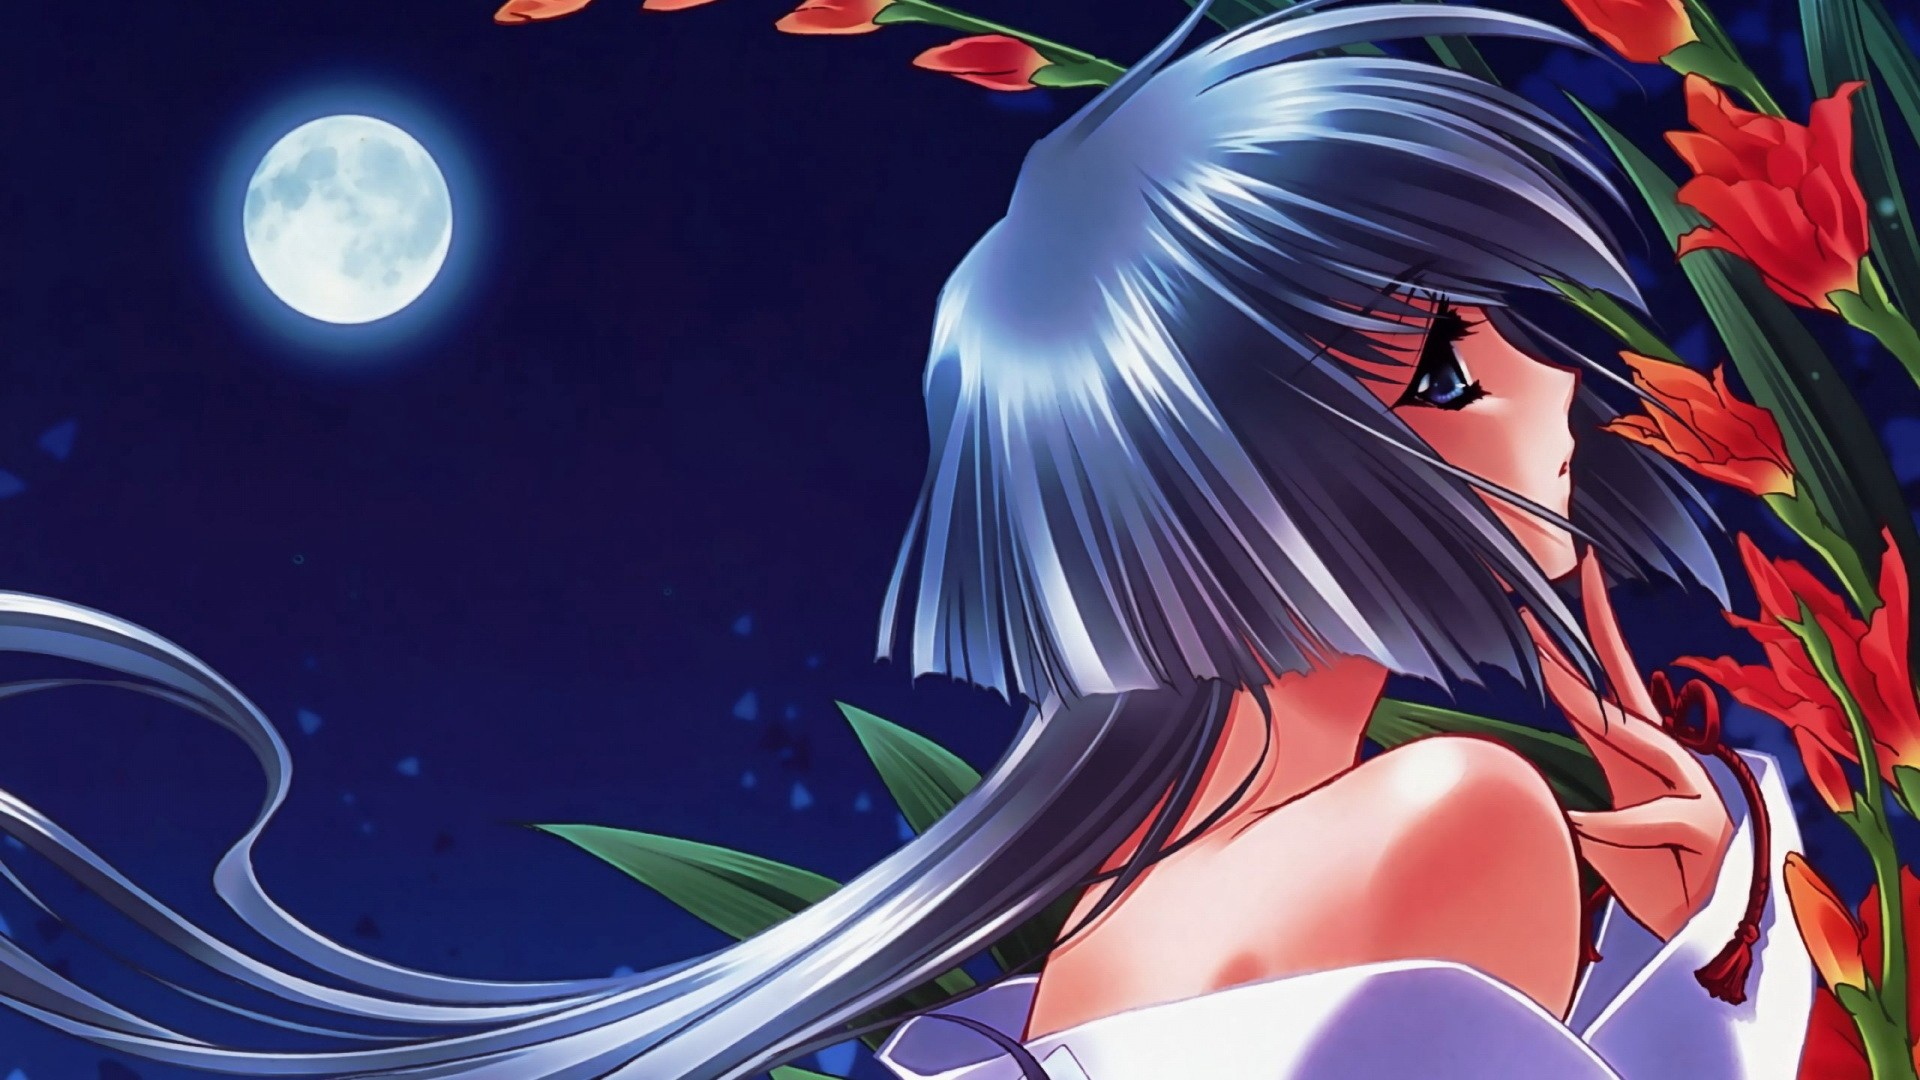 1920x1080  Wallpaper girl, pin-up, moon, flowers, night